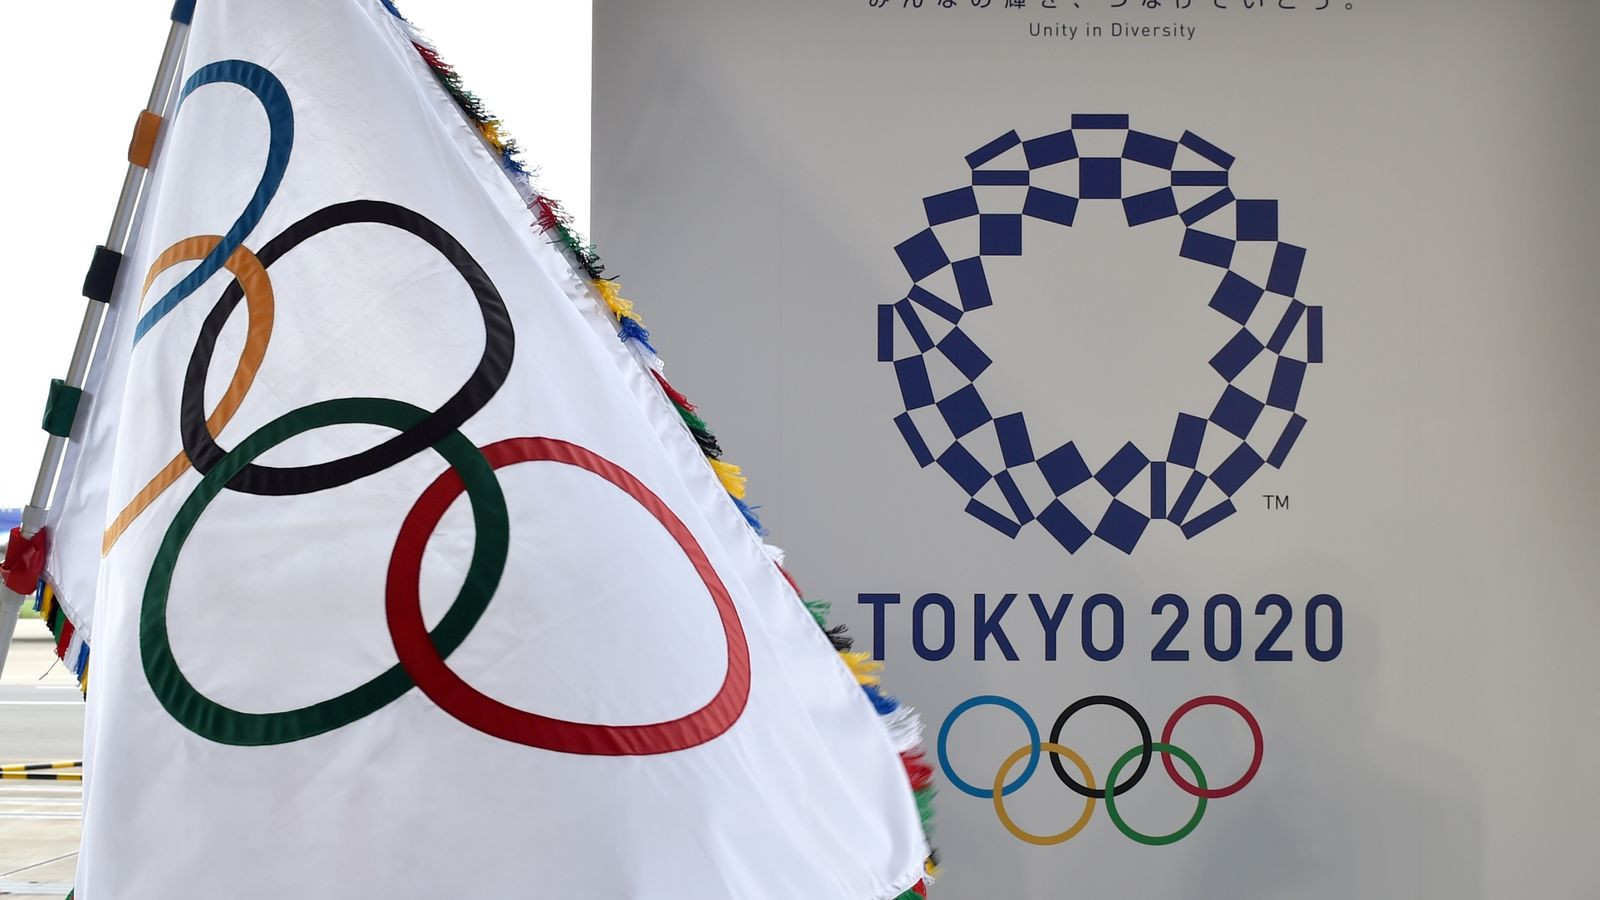 Economy of next Olympic host Japan shrank by 7.8 per cent in second quarter